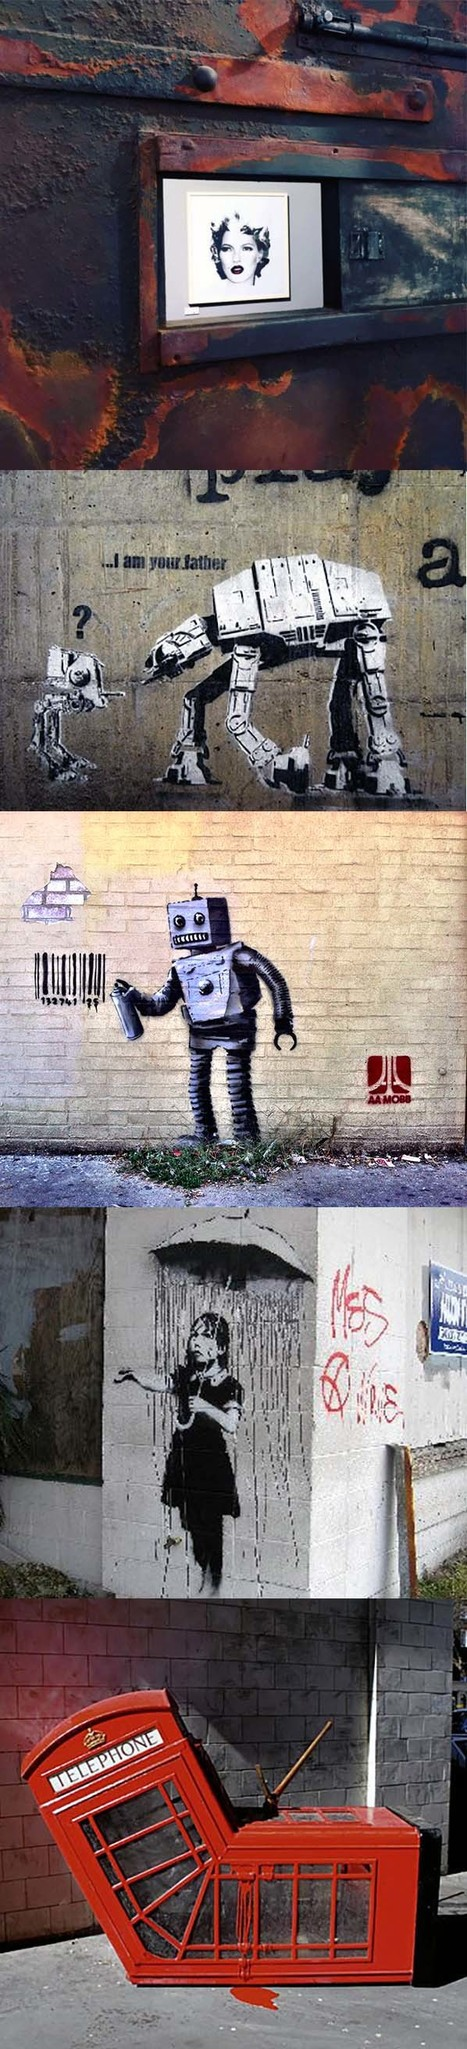 Permanent Banksy - 4 Online Marketing Tips from The Most Elusive Artist | Startup Revolution | Scoop.it